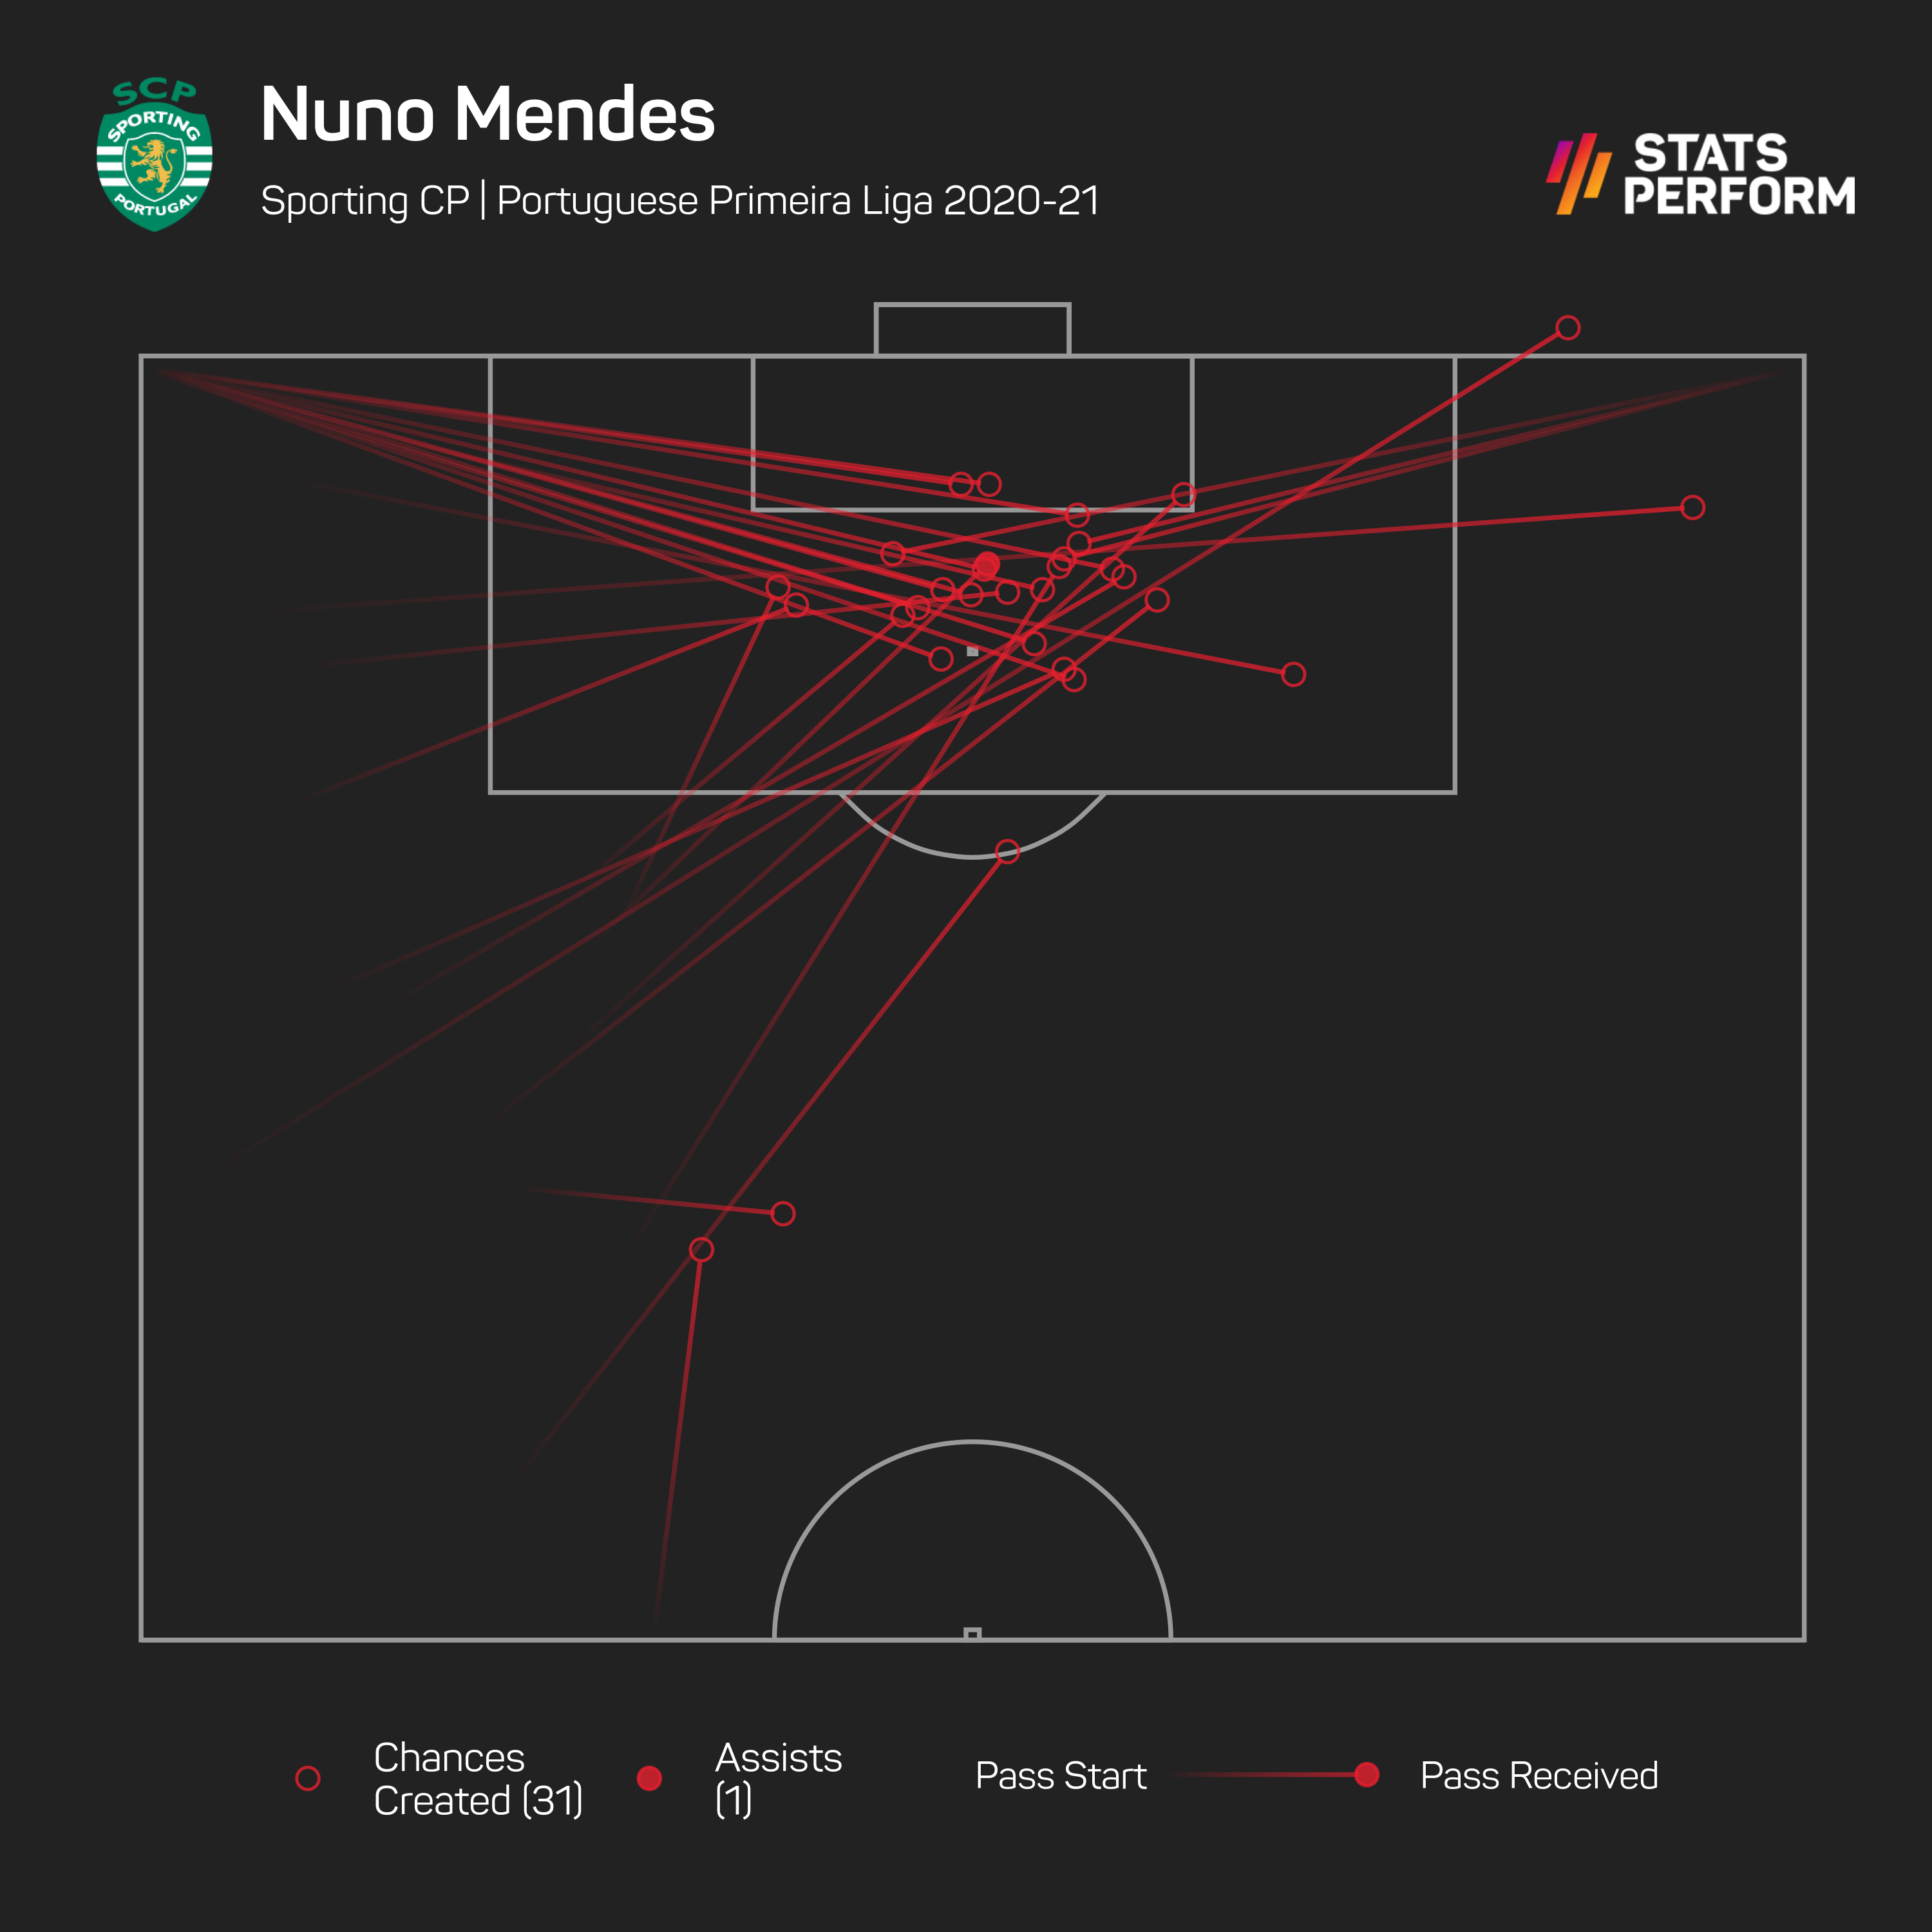 No defender in Europe's top five leagues created more chances than Nuno Mendes